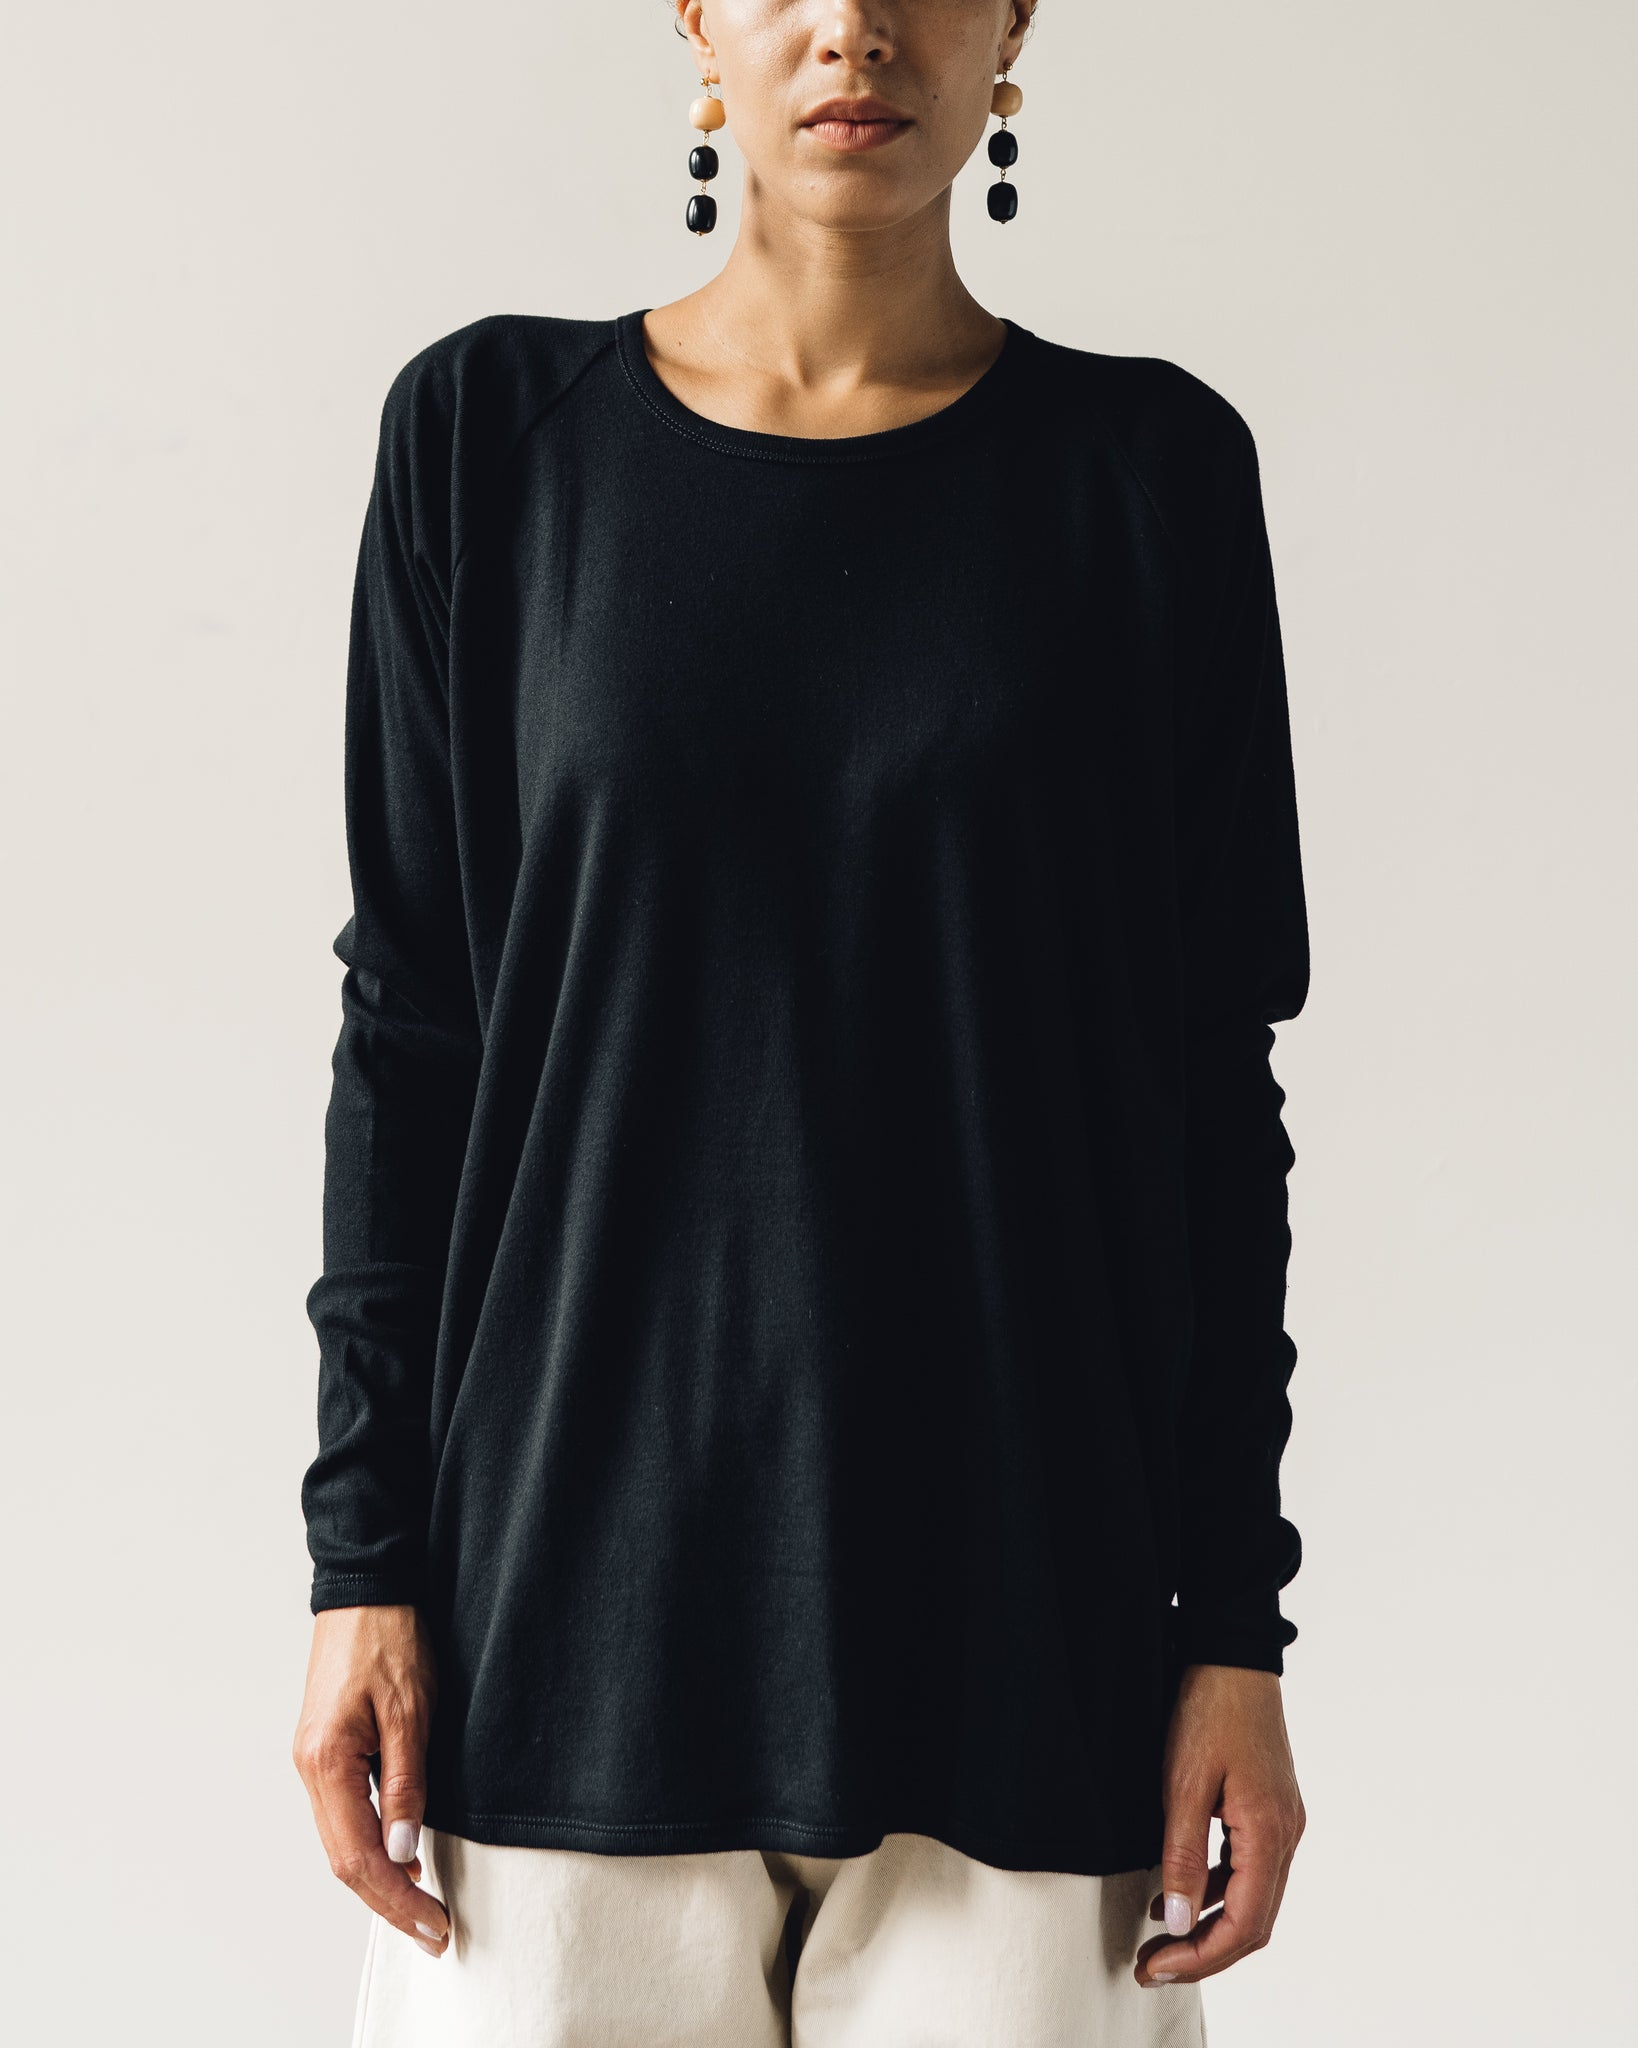 Jan-Jan Van Essche Tee #57, Black 1/1 Rib Cotton